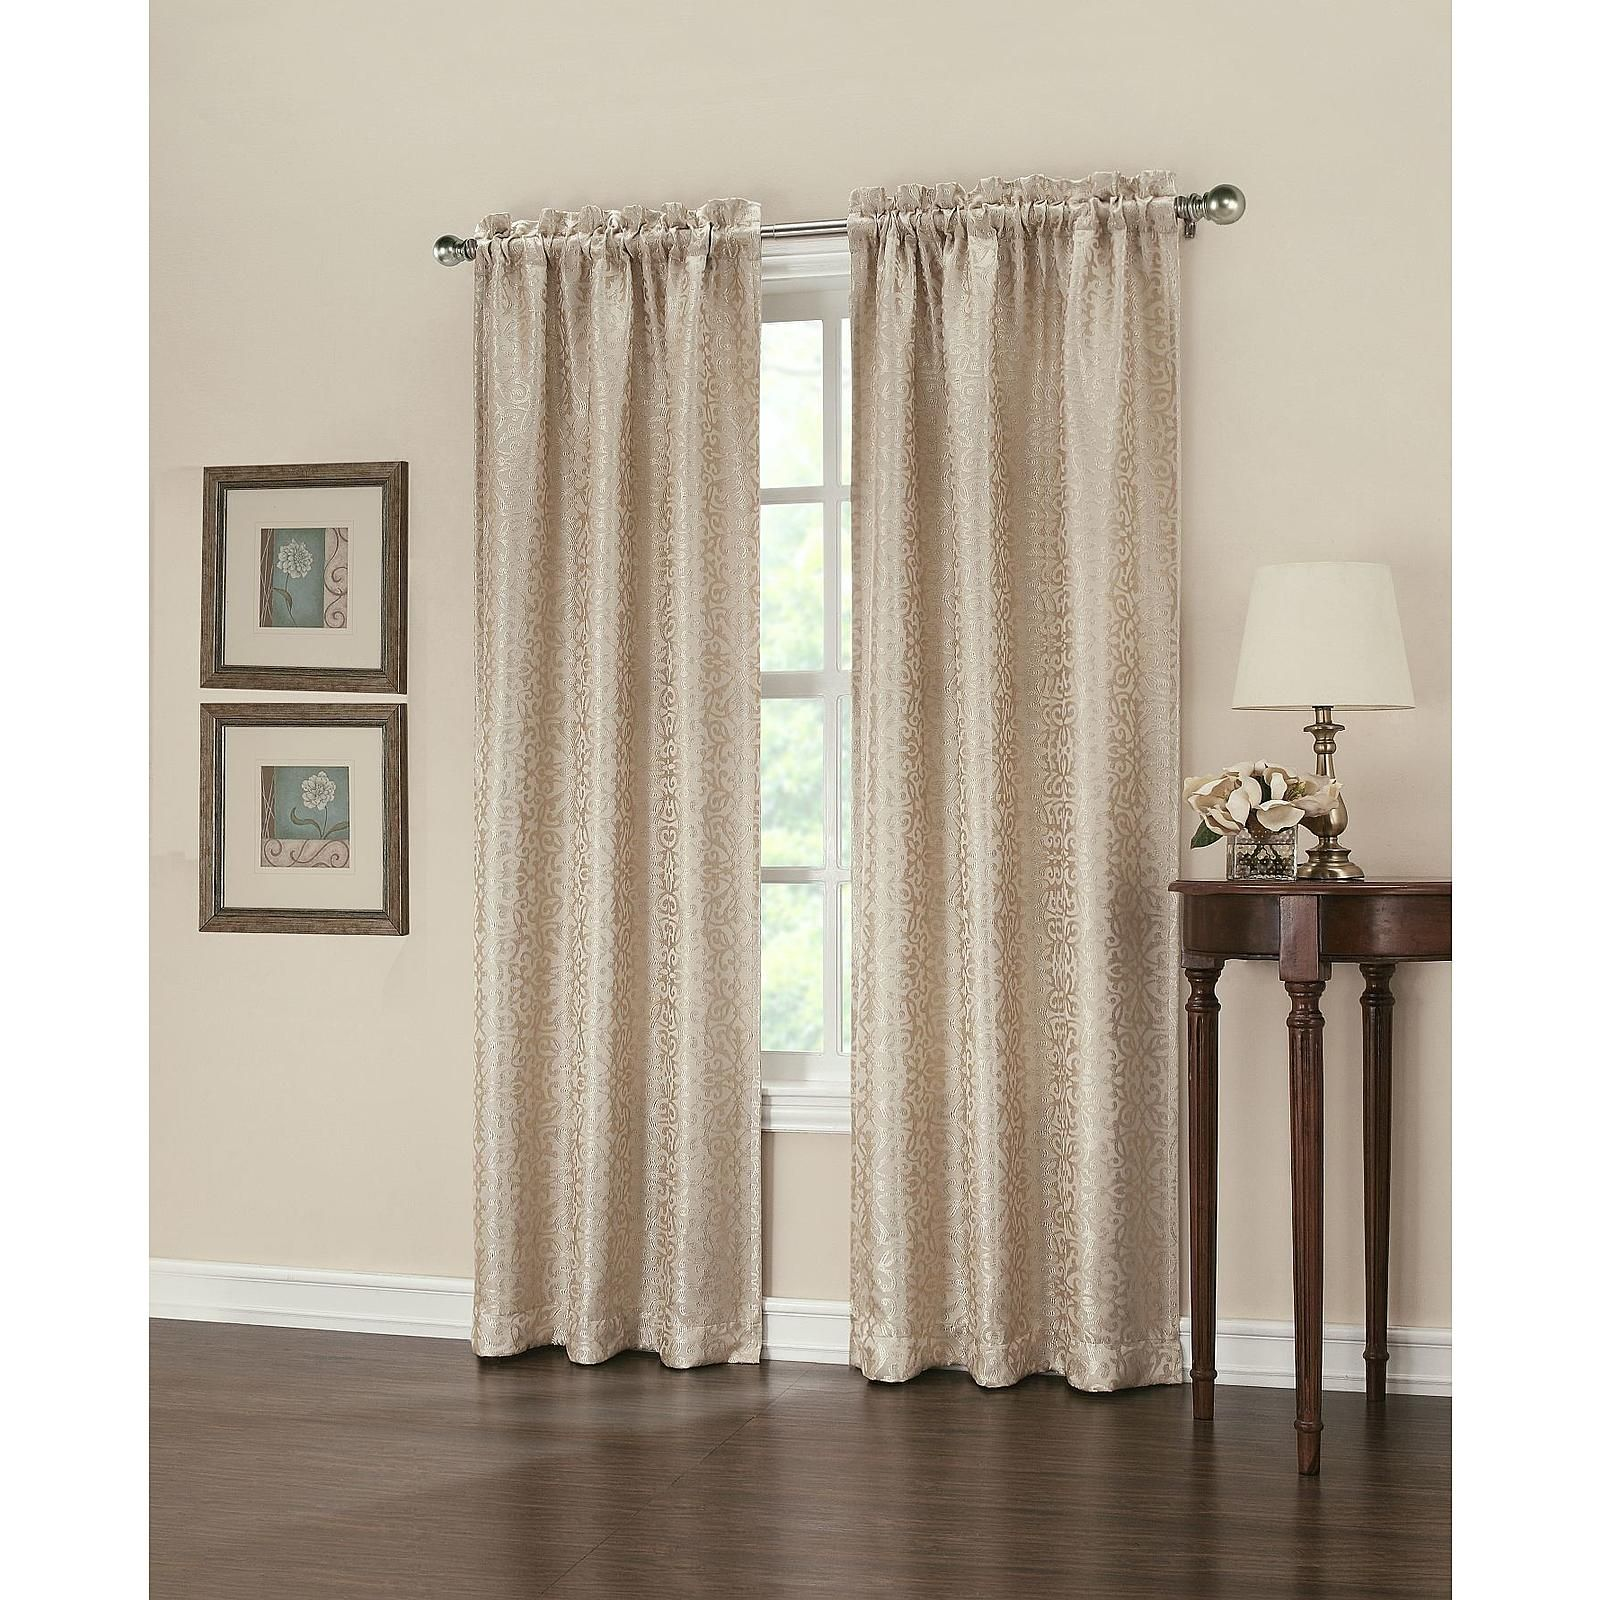 Kmart Design Blackout Curtains Second Layer 1799 1979 Valerie Oyster Window Panel Beautiful Style With